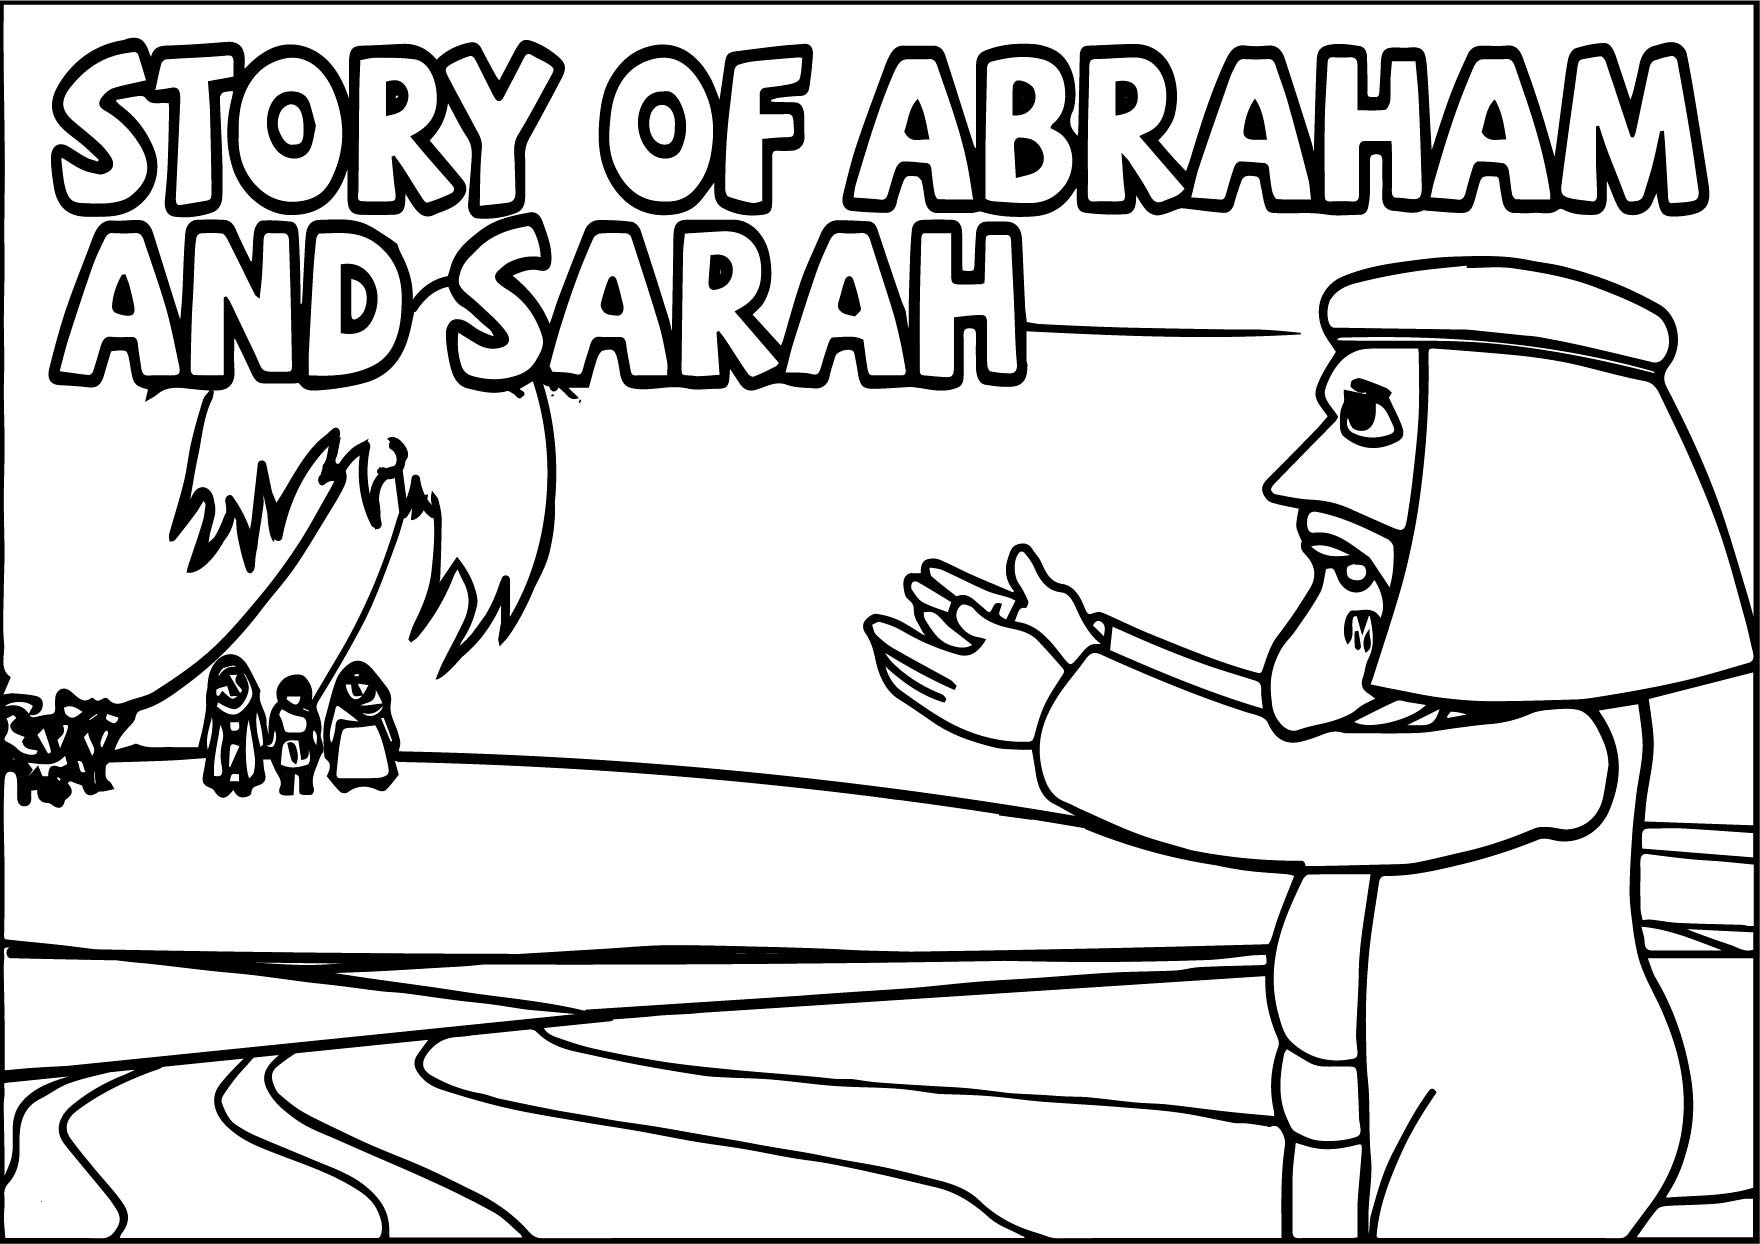 sodom and gomorrah coloring pages Collection-Rahab Coloring Pages sodom and Gomorrah Coloring Pages Luxury sodom and Gomorrah Coloring 12-e